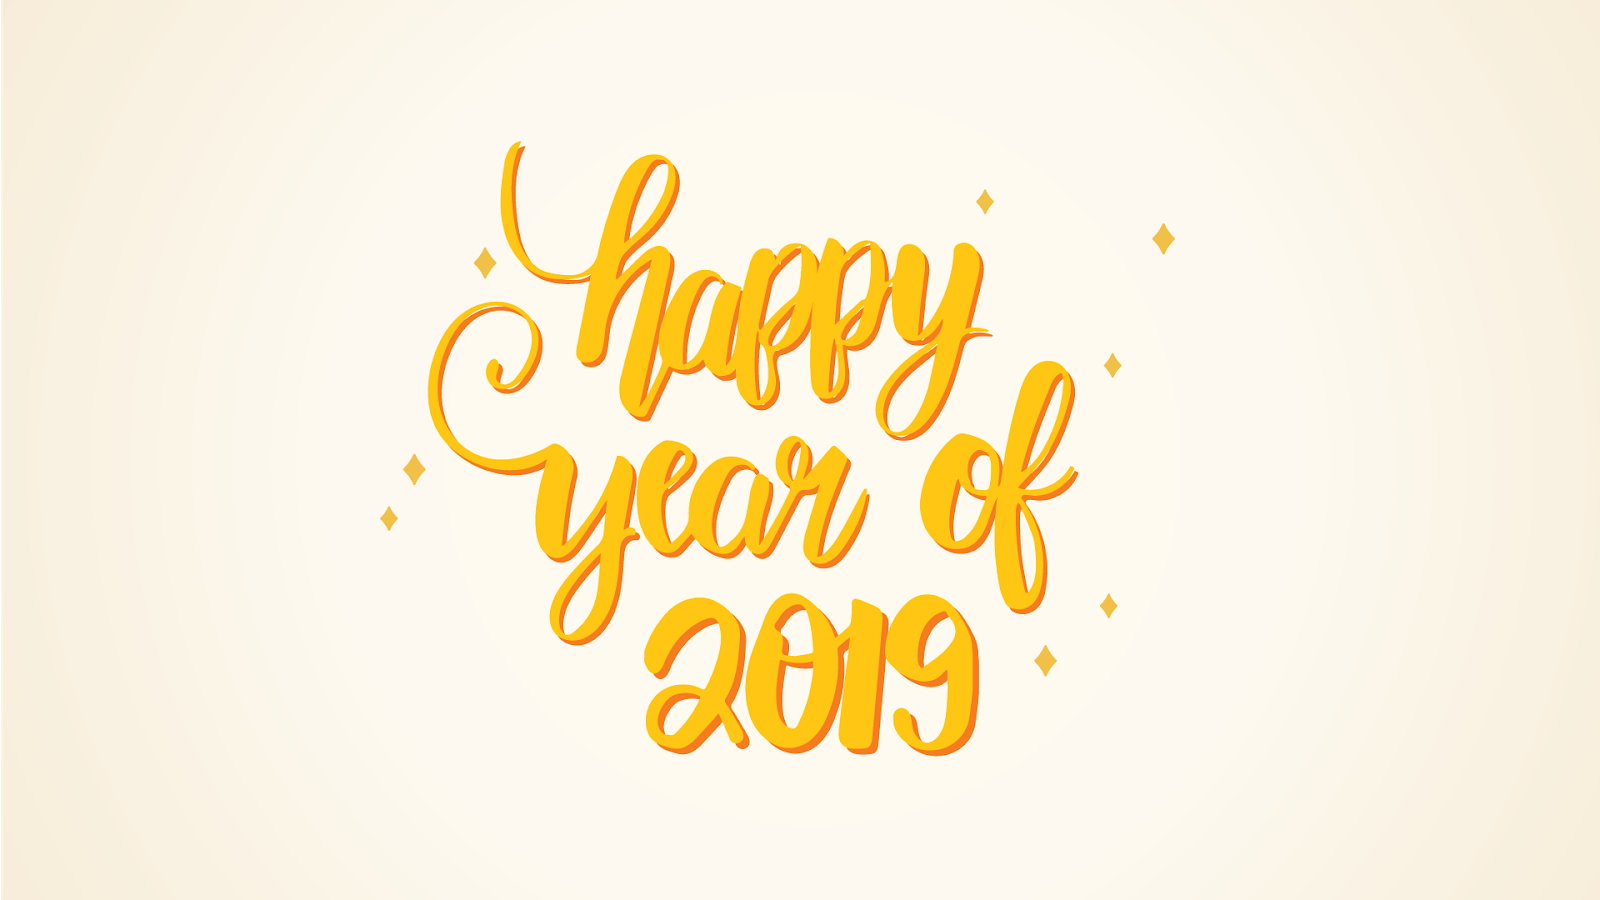 Happy New Year 2019 - Desktop Handlettered Wallpaper Download